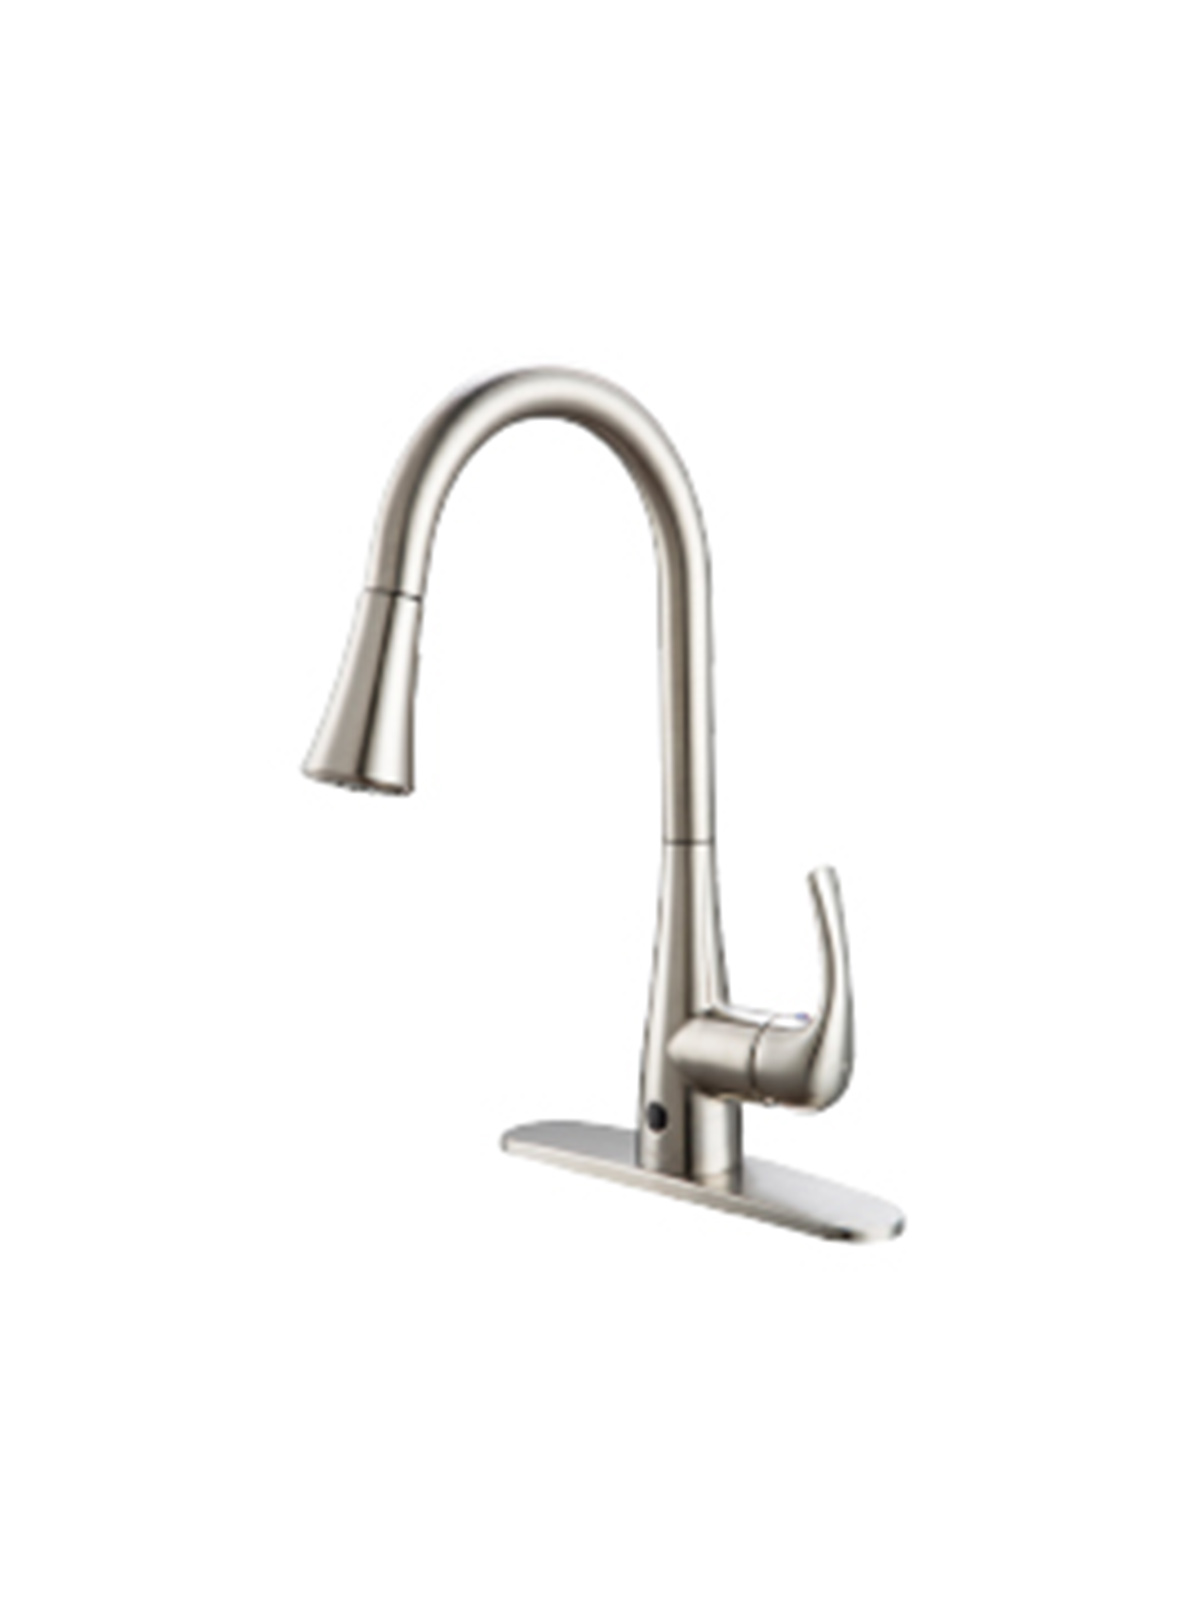 Best Kitchen Faucets, touchless faucet on Amazon